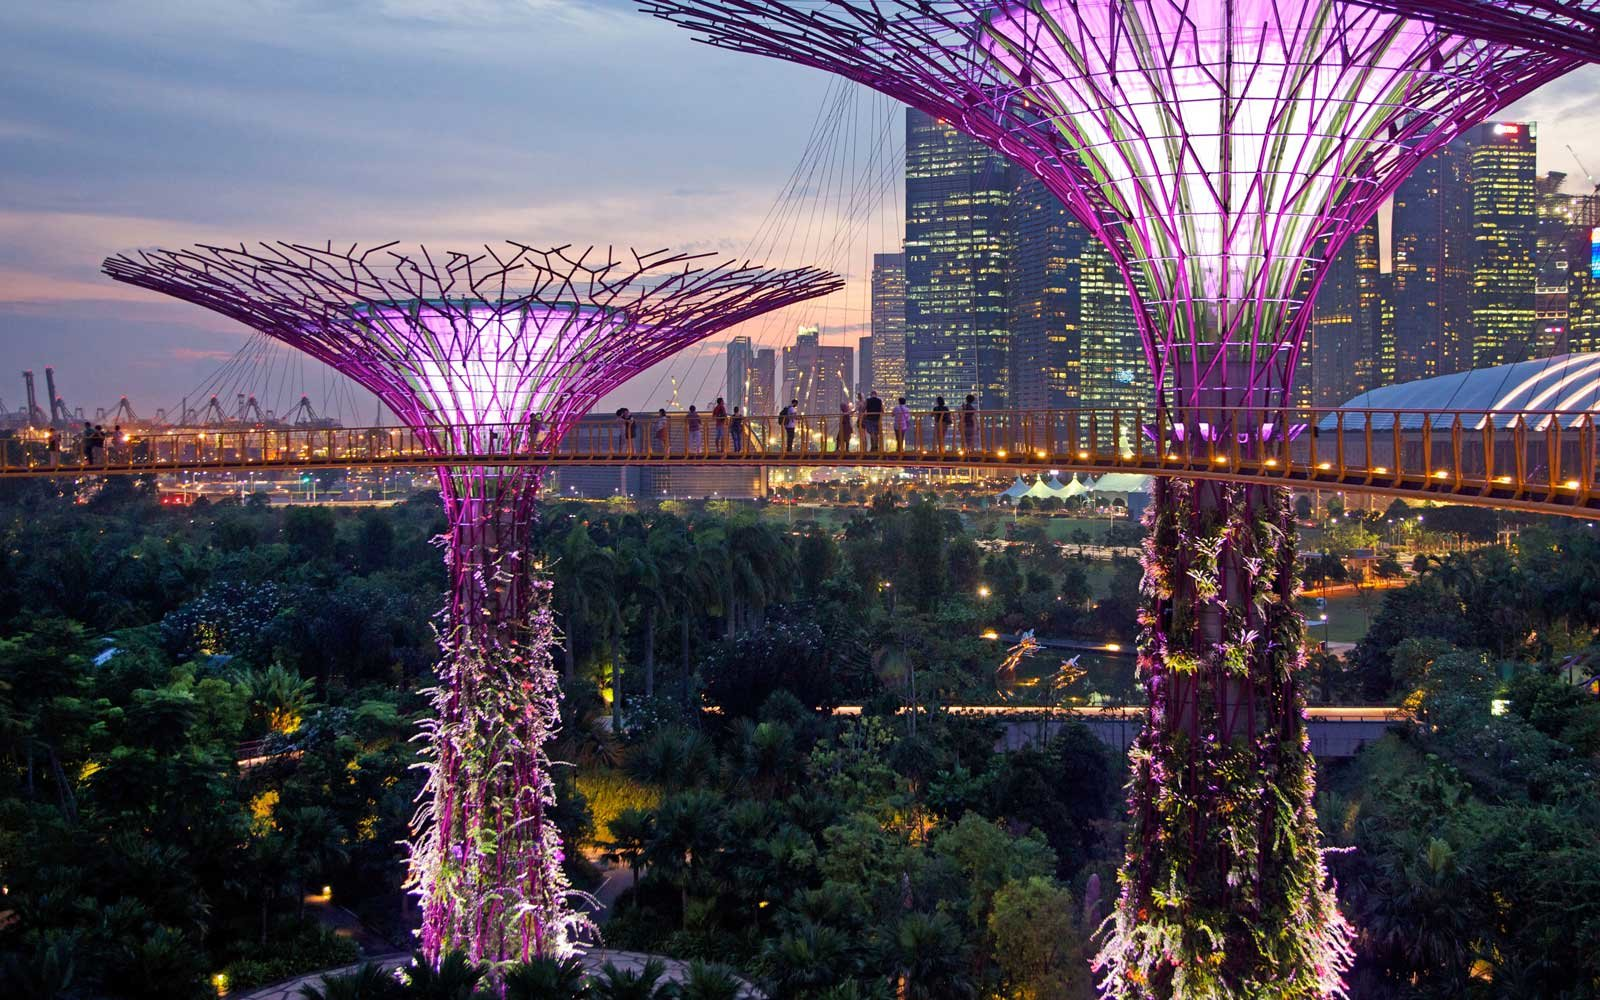 Singapore's Gardens by the Bay illuminated at night